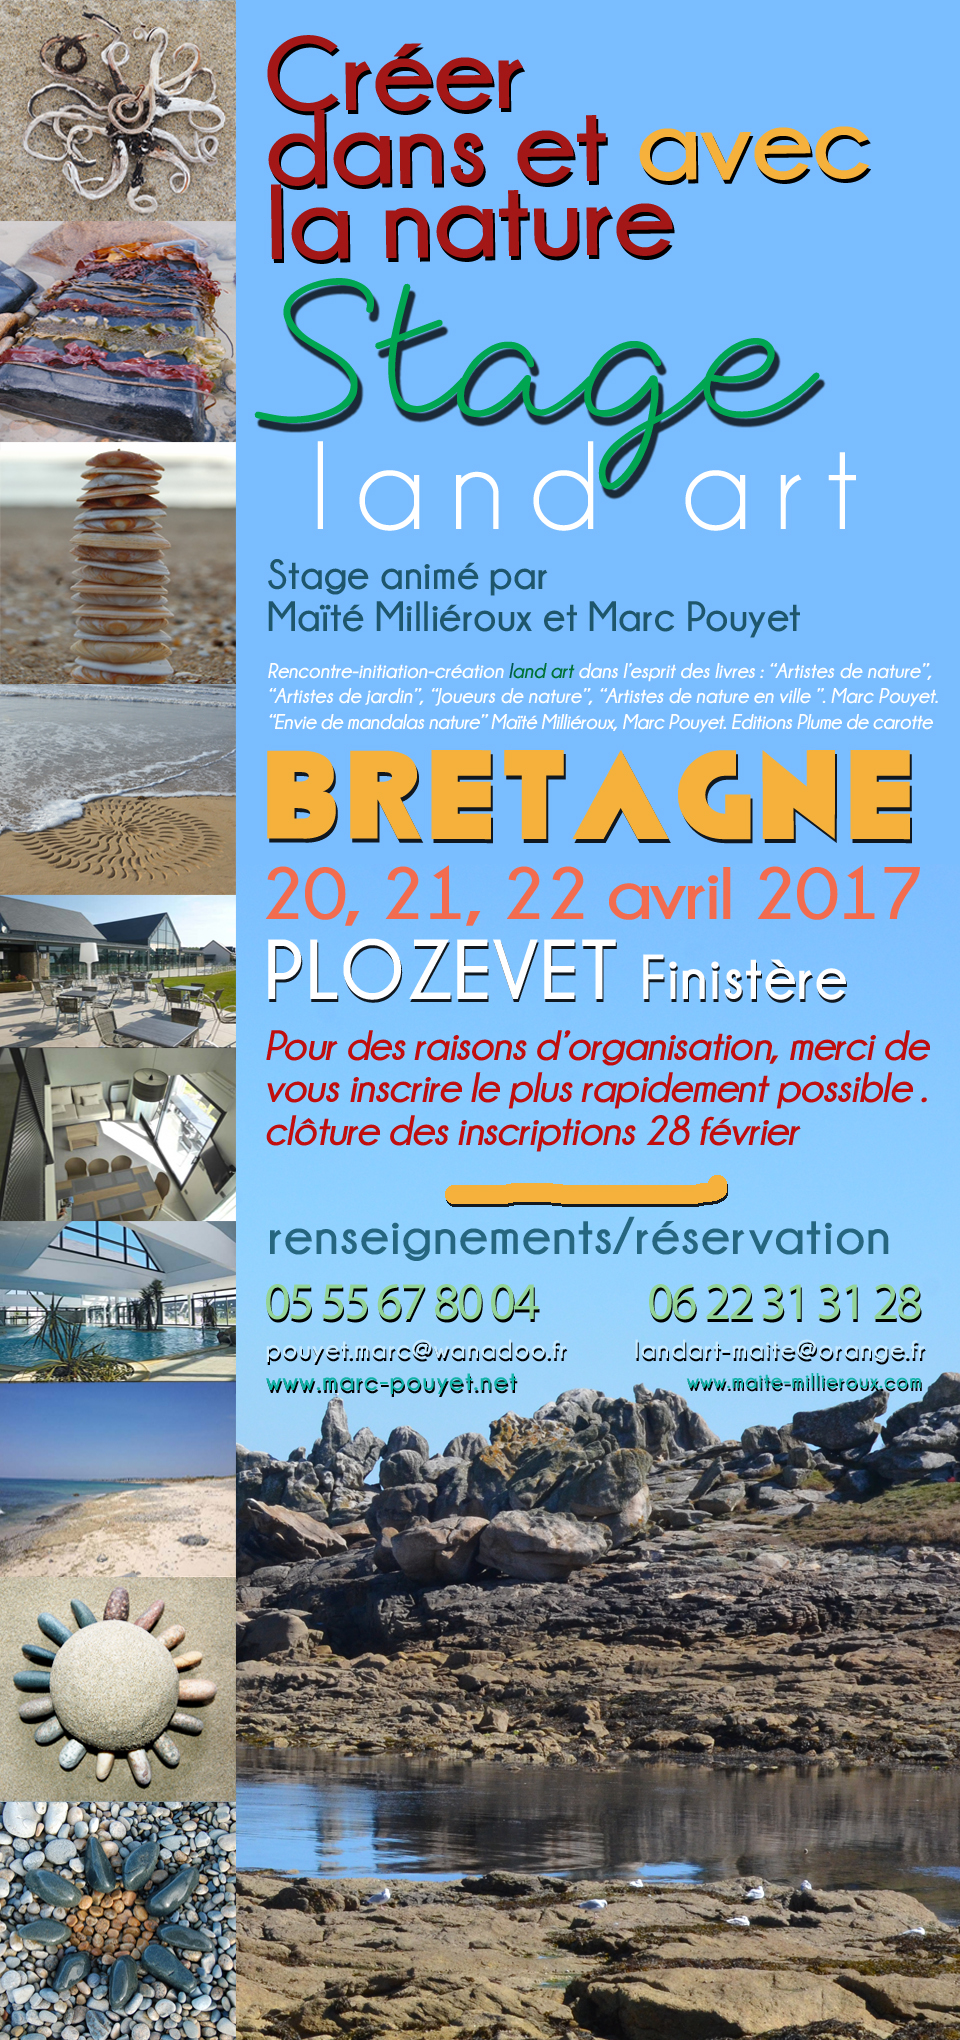 Article stage 2017 BRETAGNE